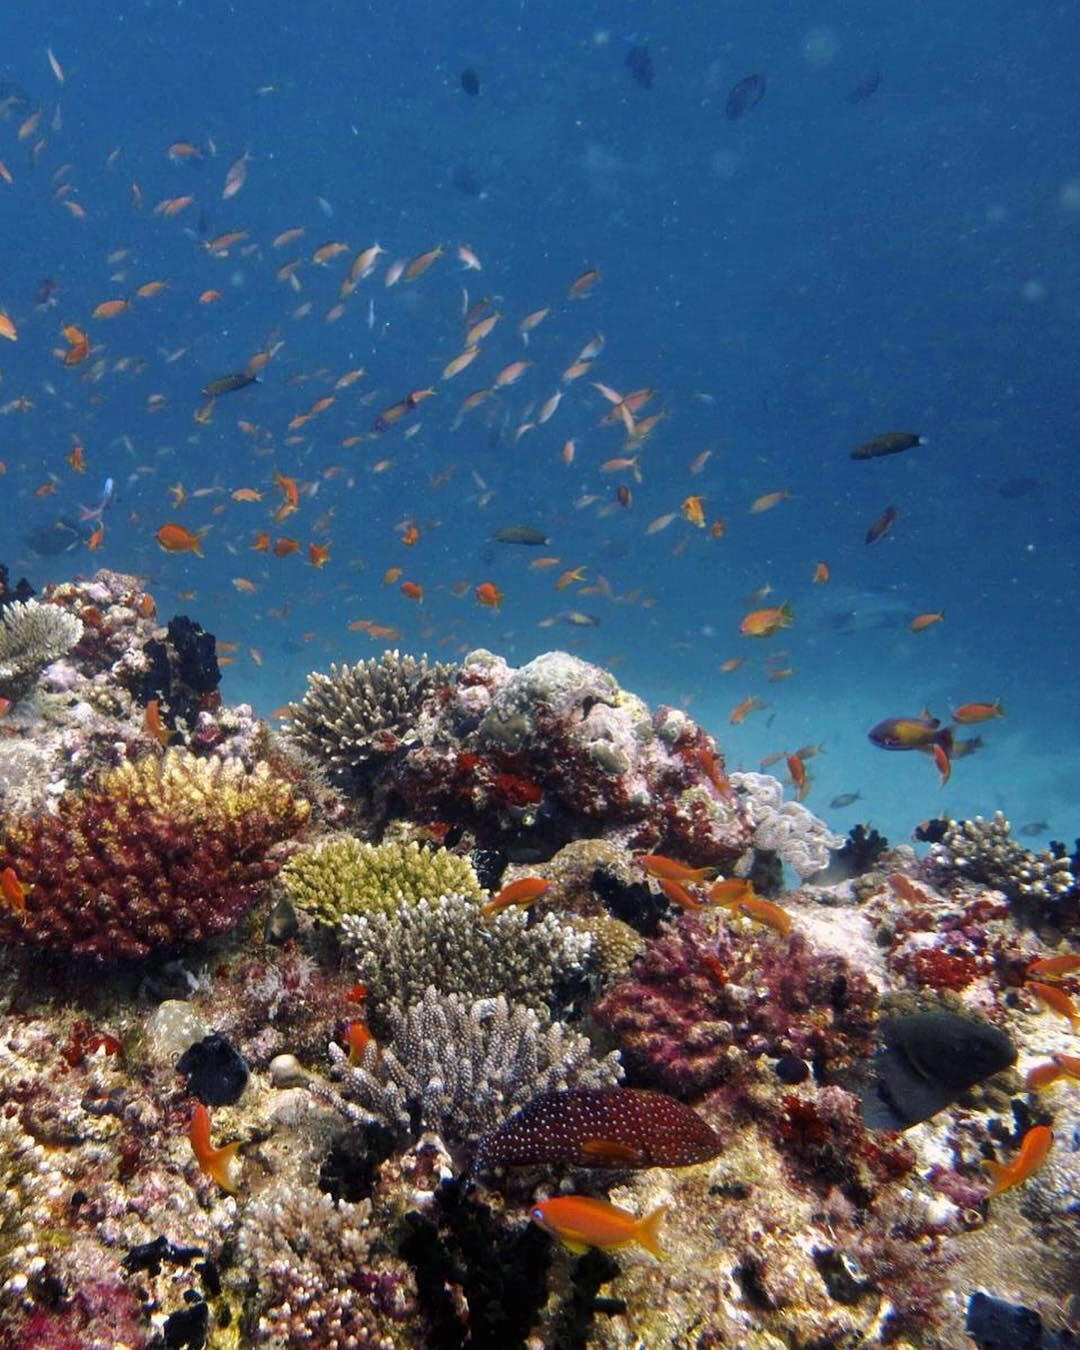 Abundance of Life on Coral Reefs Has Been Puzzling Since Charles Darwin's Day – New Research Provides Answers